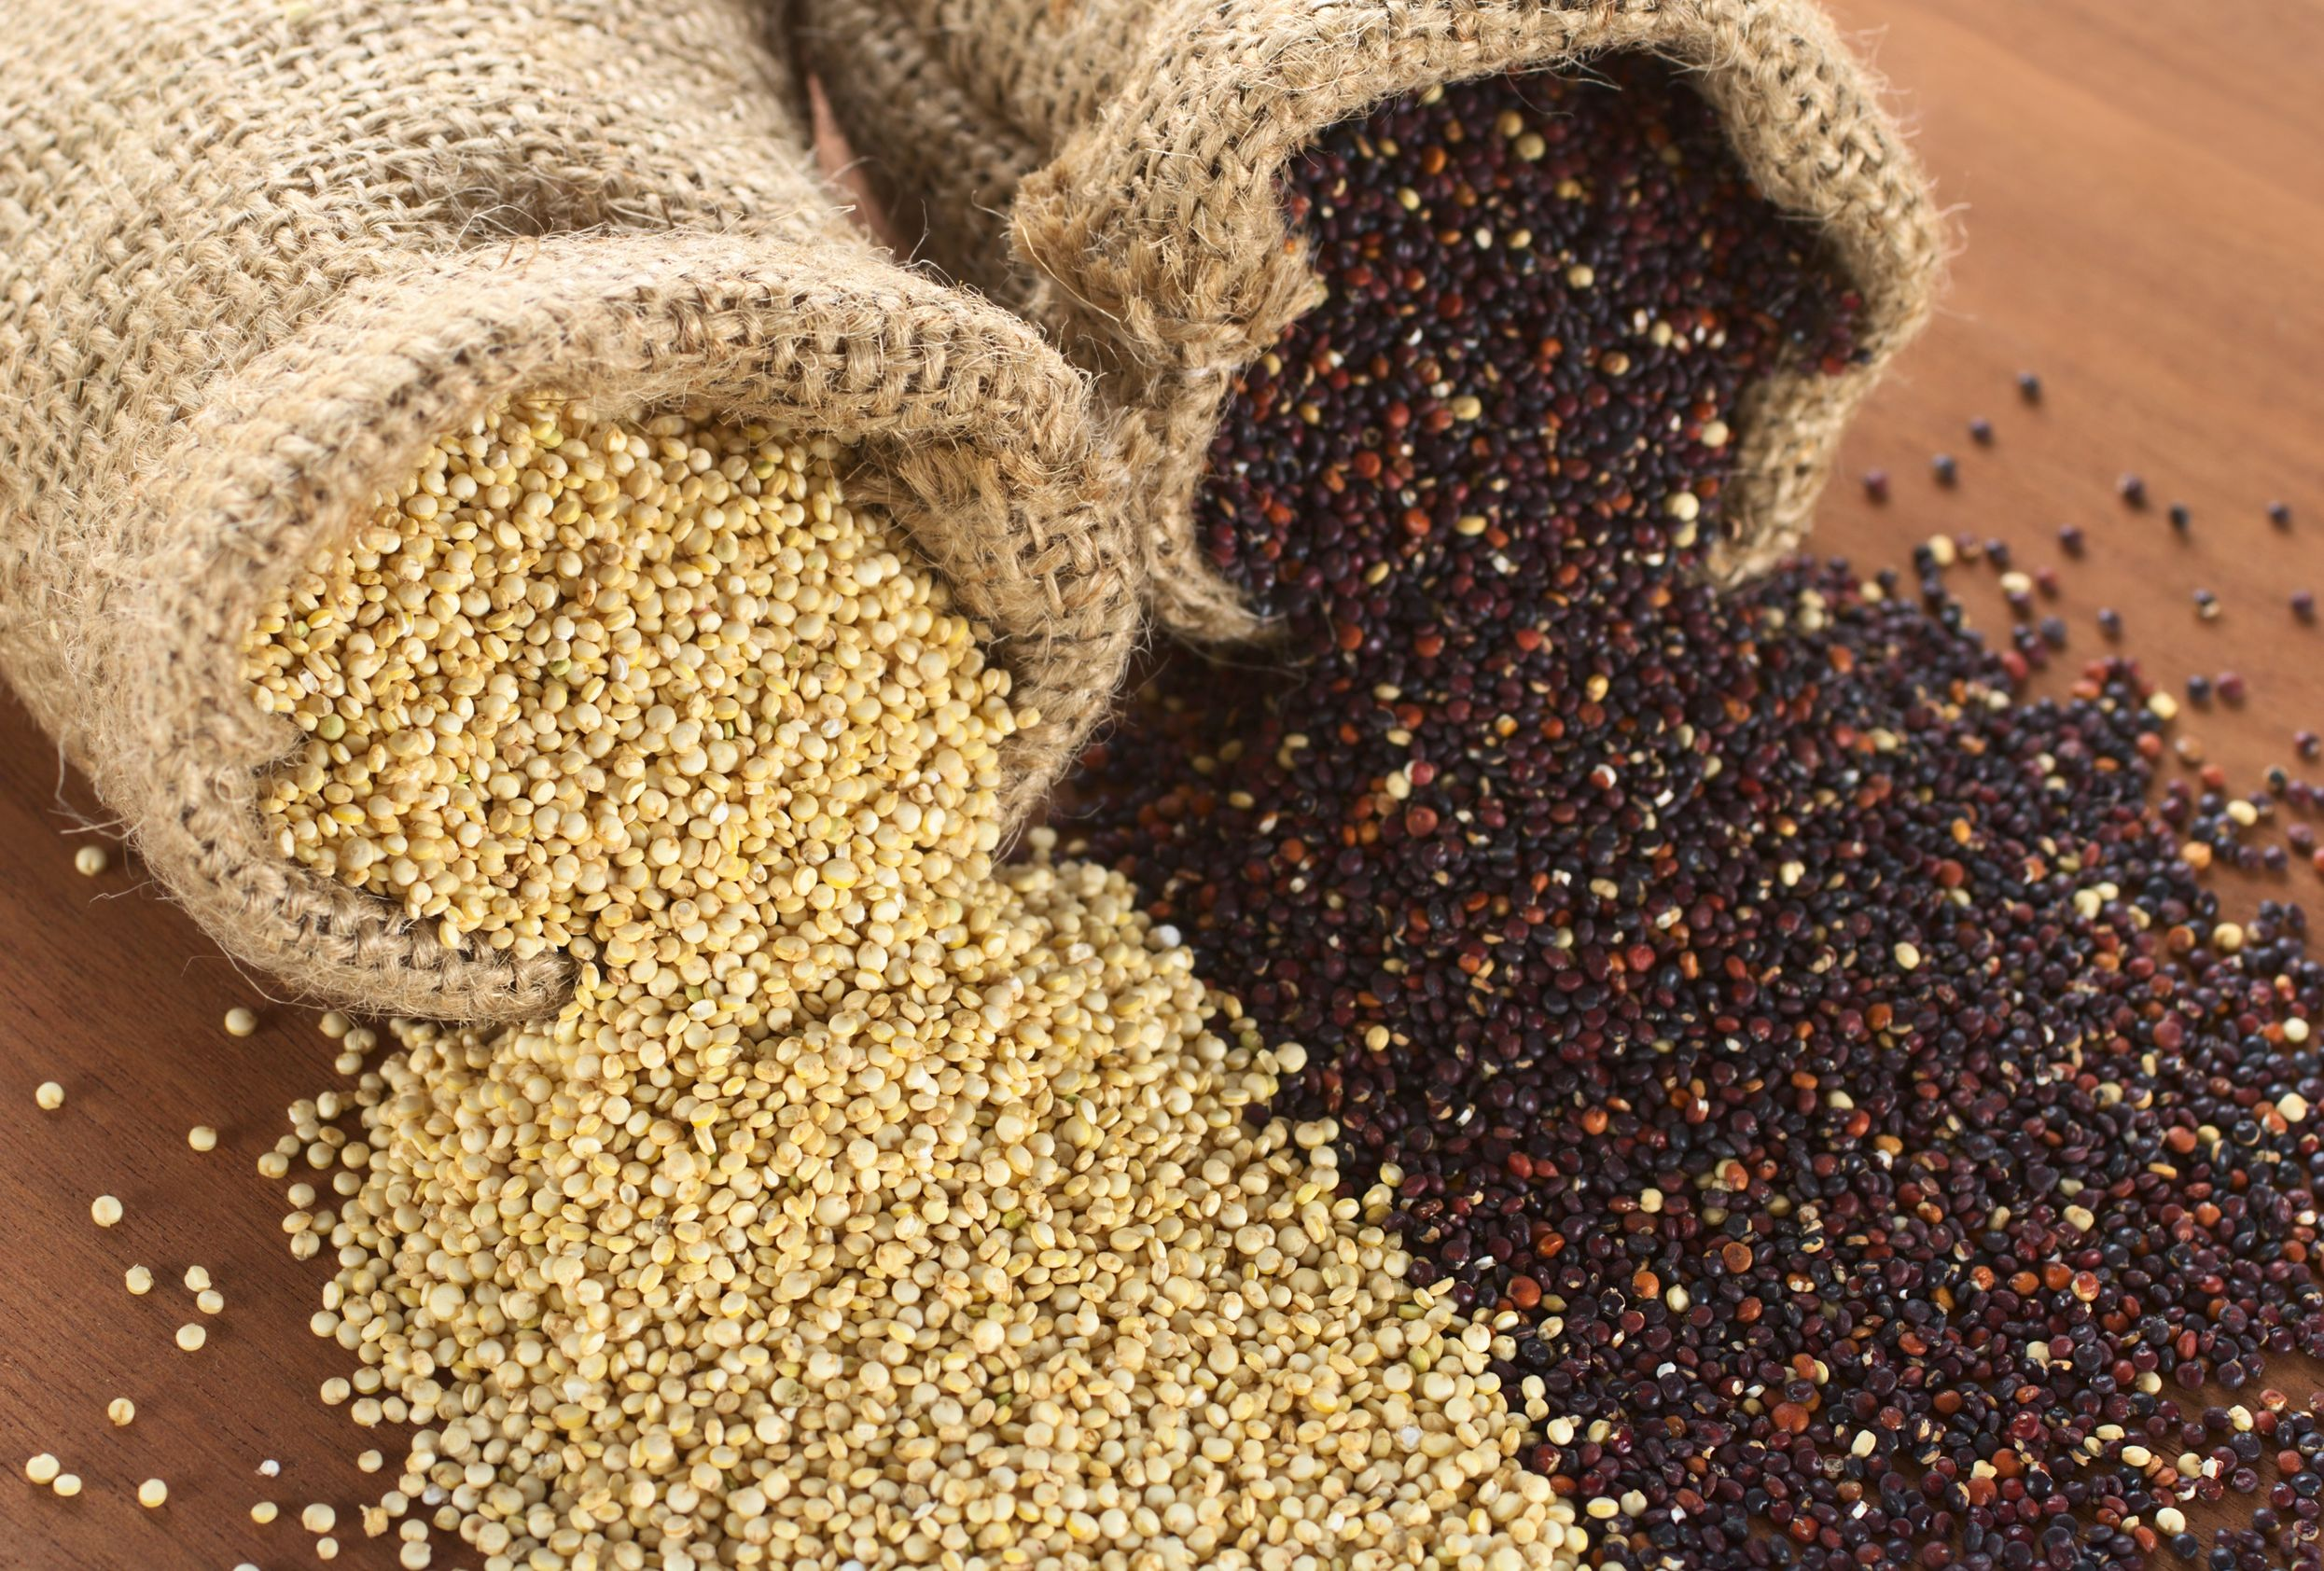 WholeDude - WholeDesigner - Phytochemistry: Quinoa seeds are Gluten-Free. It is also Cholesterol-free, low-fat, and high in protein. Throughout the ages many foods have been considered sexual stimulants. Quinoa has a special reason to be recognized as an Aphrodisiac, a chemical agent that can enhance sexual performance. Such a claim can be based upon the study of Polyamines found in its leaves and seeds.